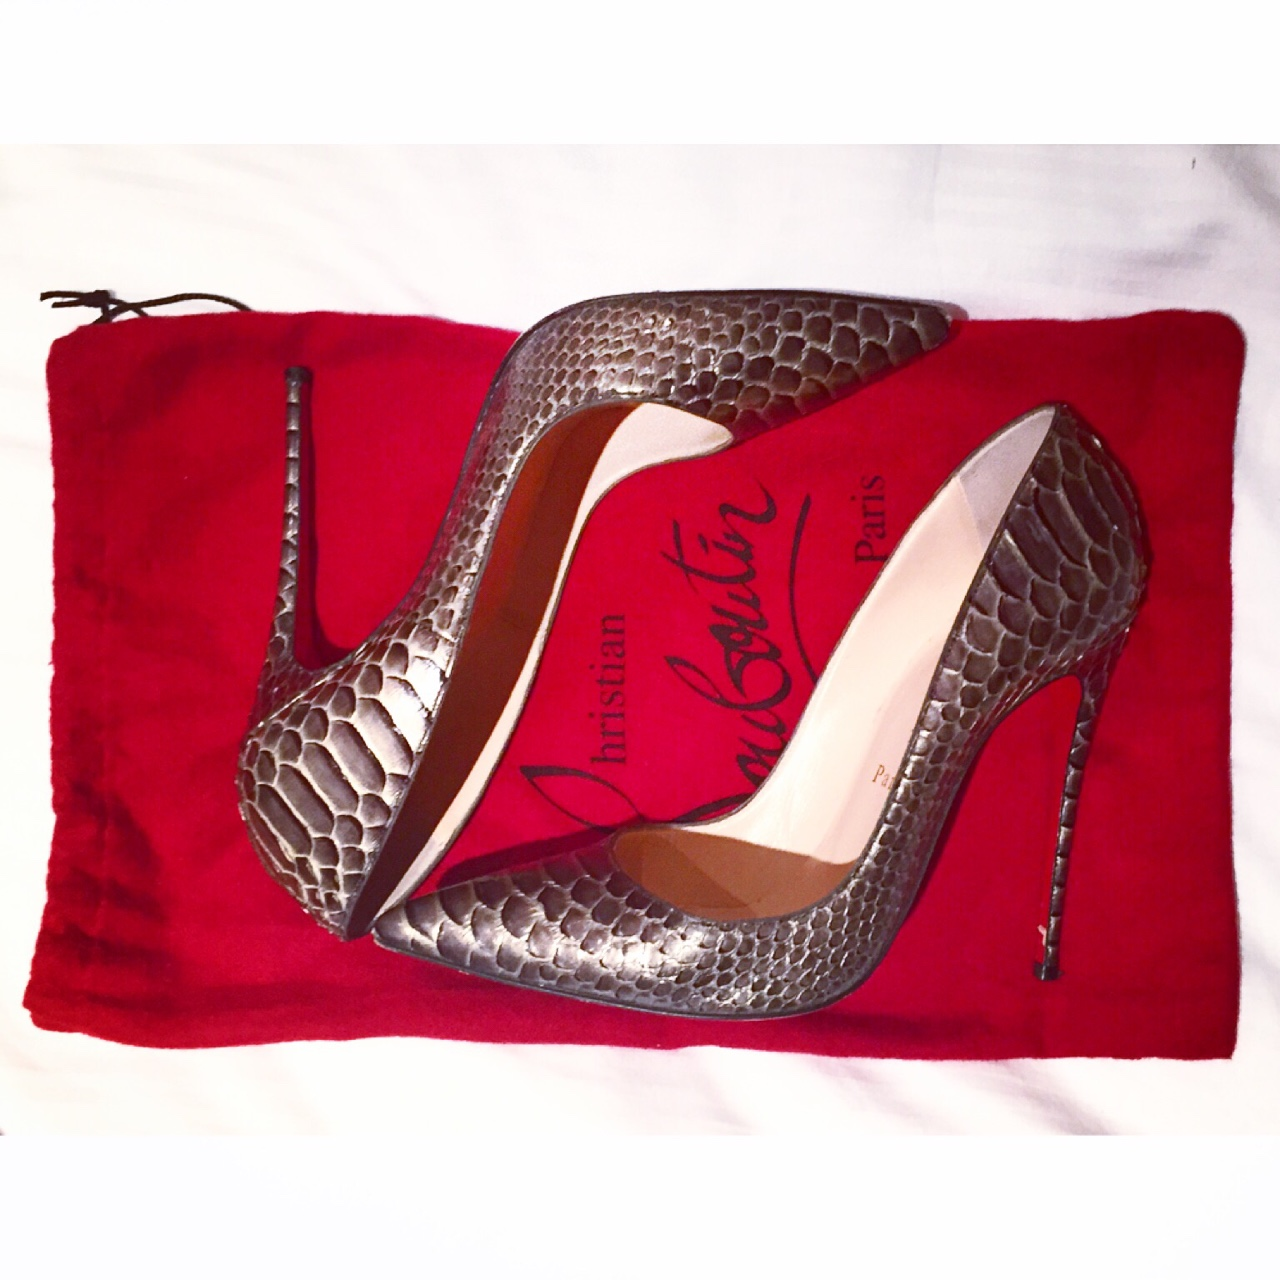 Python So Kate Python Loubs for dinner last night at the Strathearn- Gleneagles. //SHE